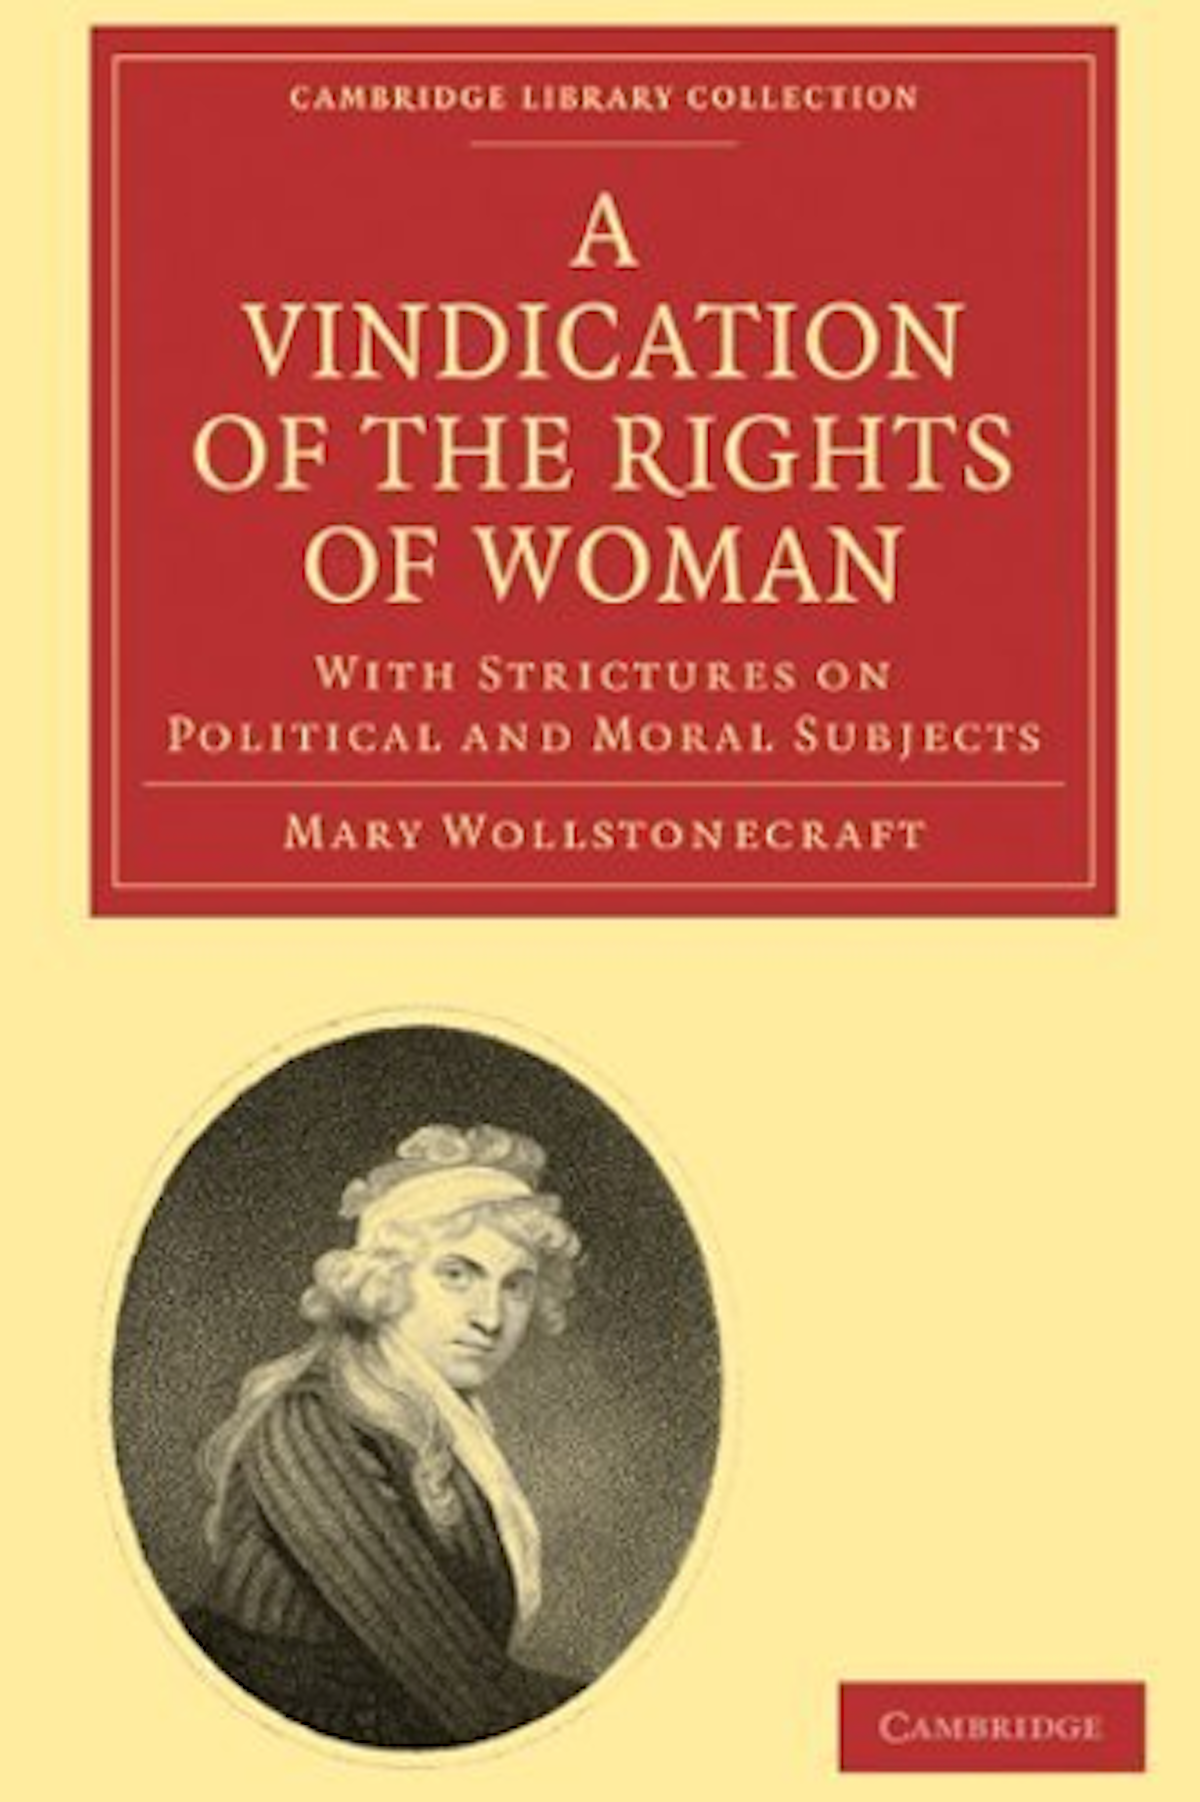 vindication of the right Mary wollstonecraft's visionary treatise, originally published in 1792, was the first  book to present women's rights as an issue of universal human rights ideal for.